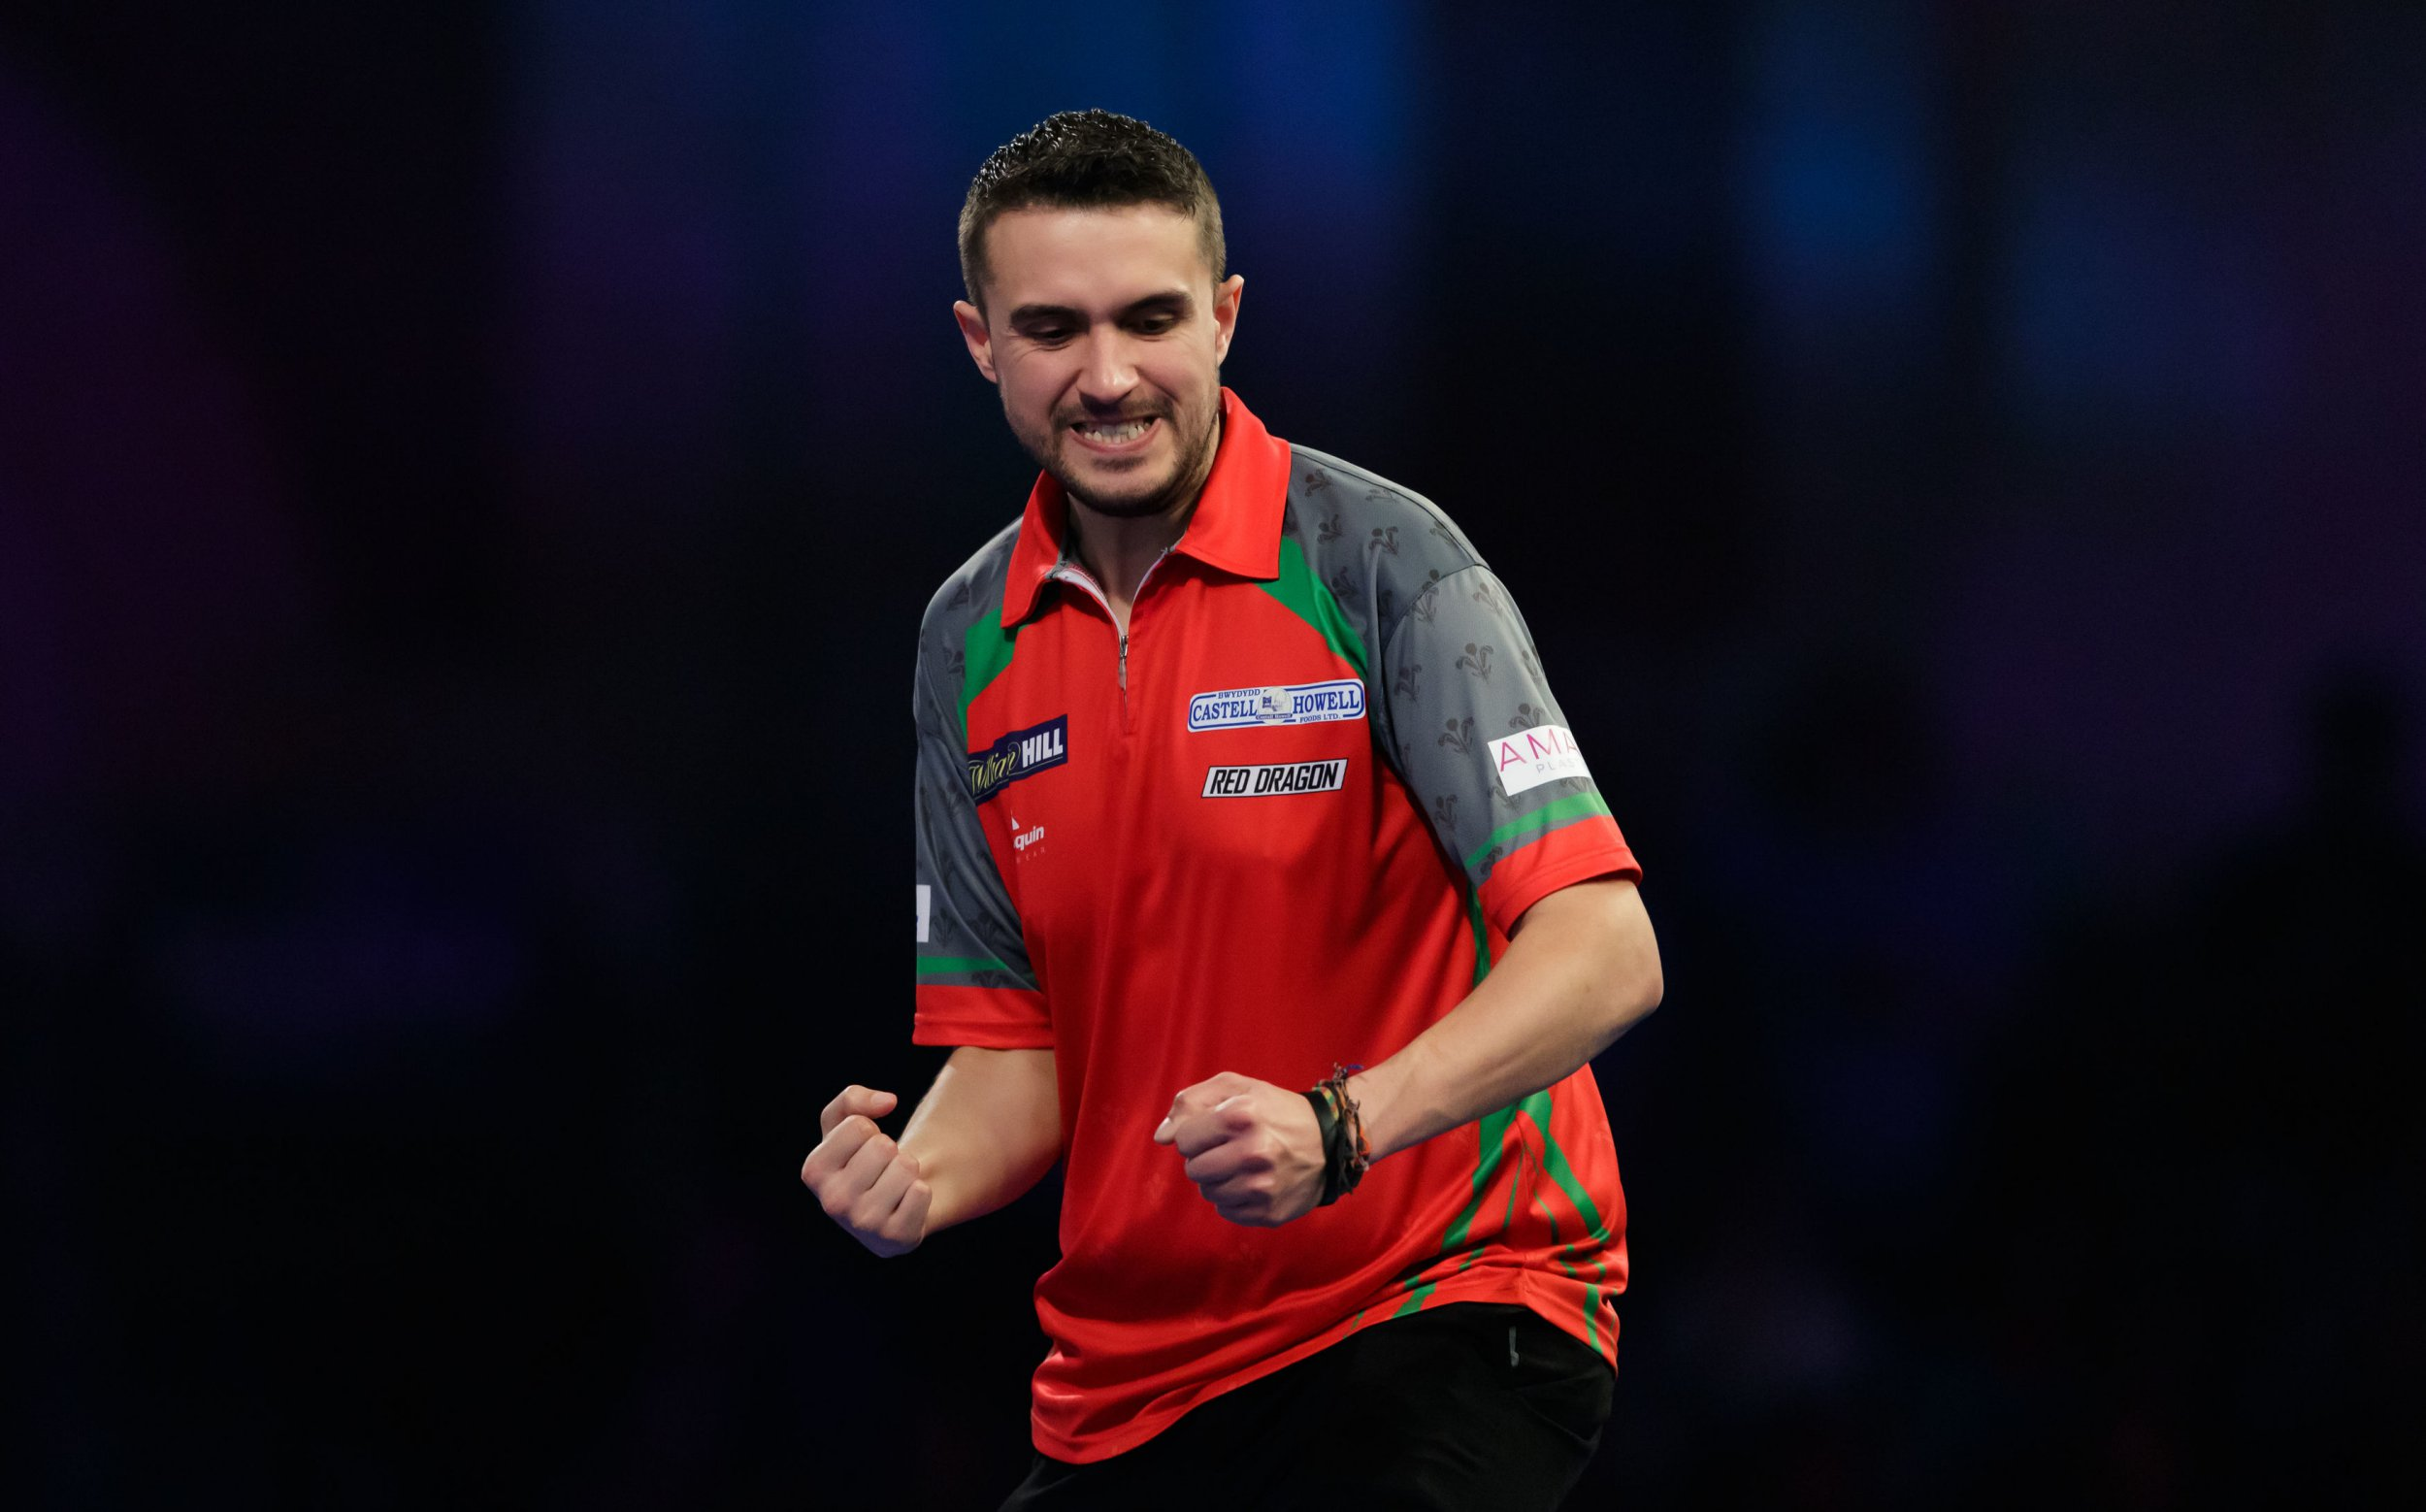 Jamie Lewis celebrates during his match against Daryl Gurney during day ten of the William Hill World Darts Championships at Alexandra Palace, London. PRESS ASSOCIATION Photo. Picture date: Saturday December 22, 2018. Photo credit should read: John Walton/PA Wire